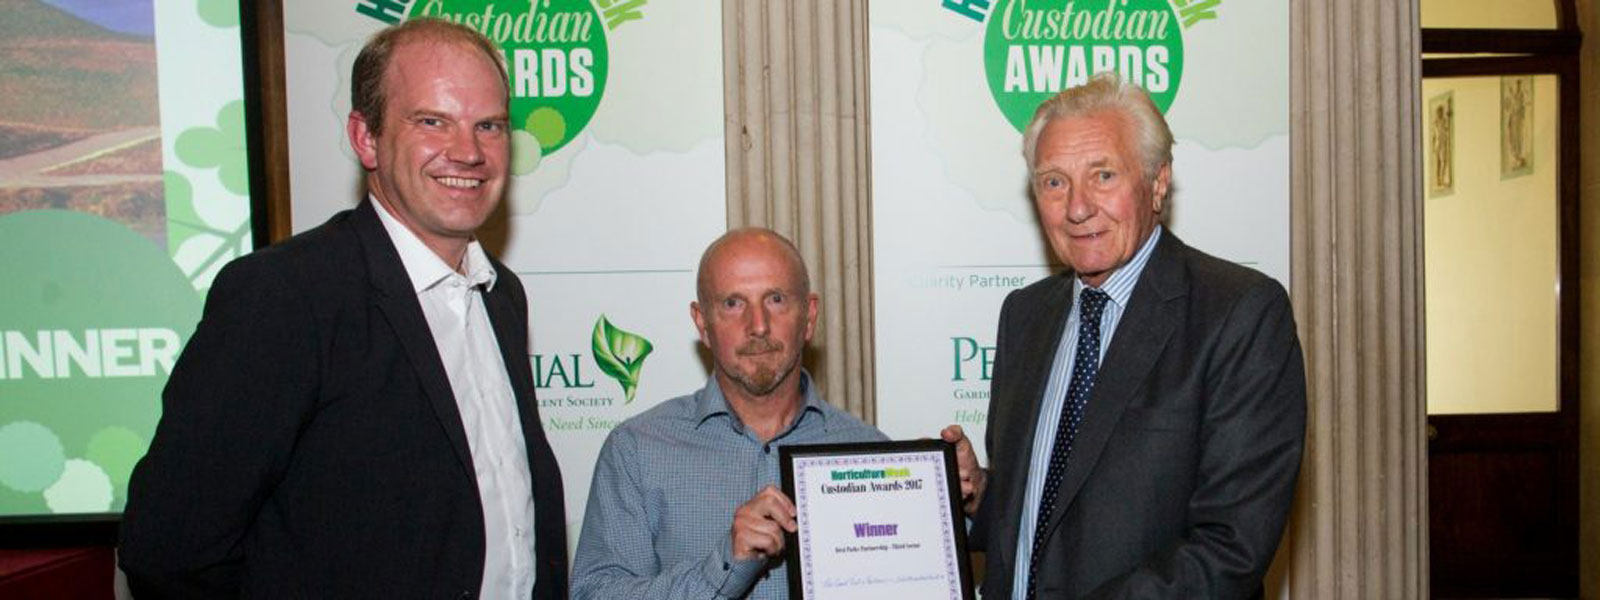 The Land Trust celebrates two wins at Horticulture Week Custodian Awards